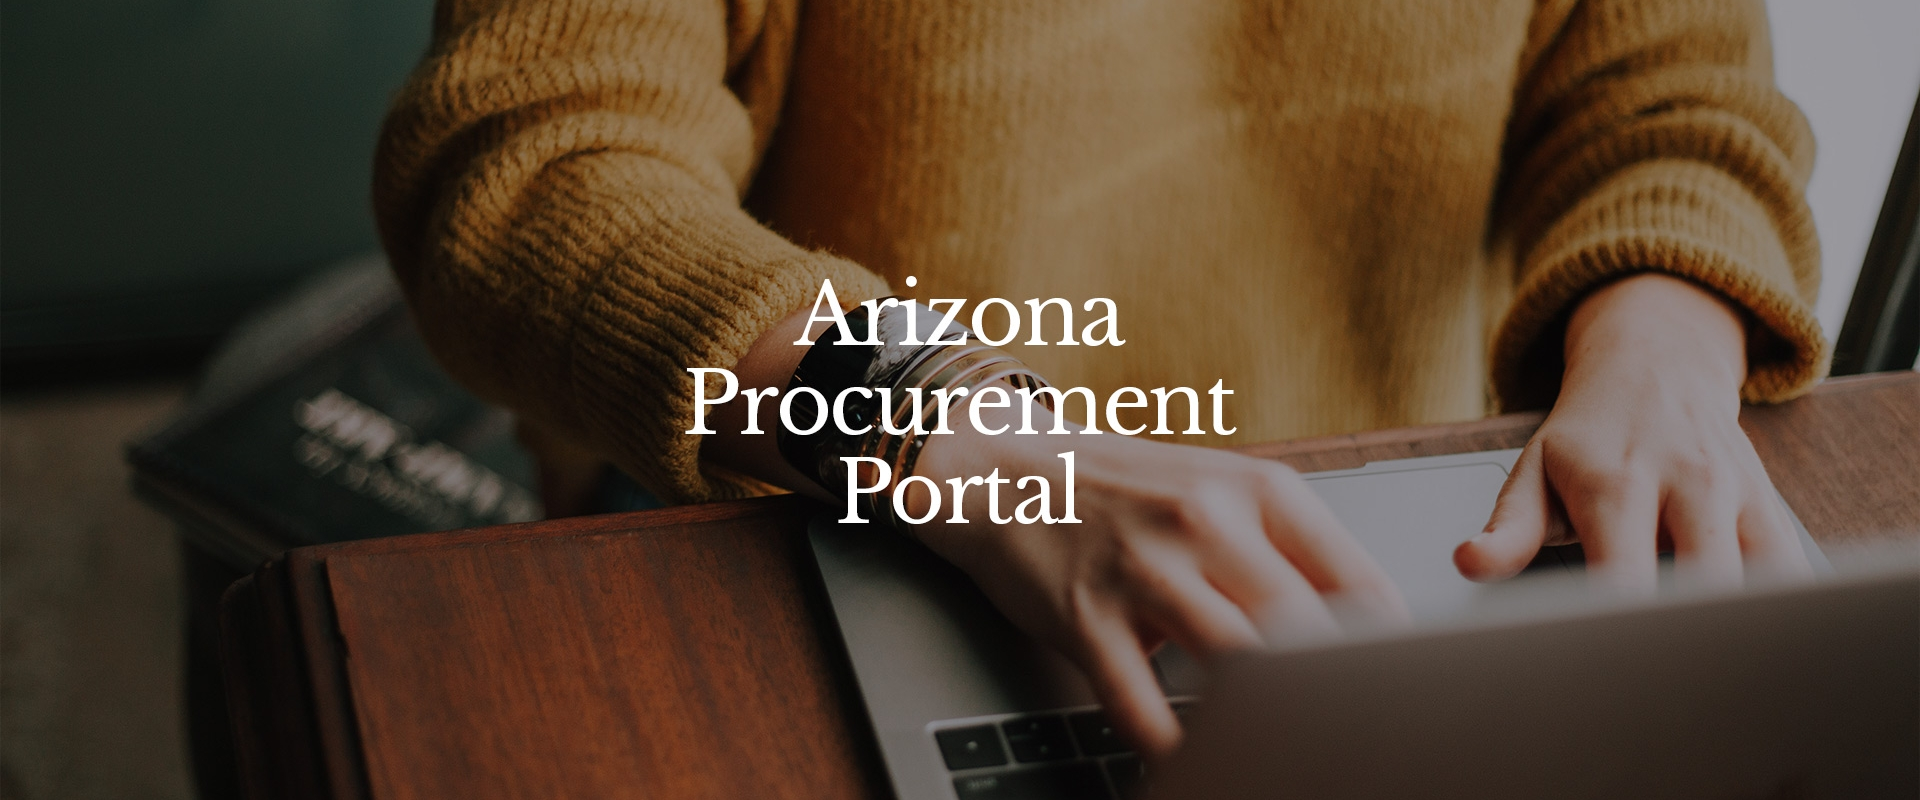 AZ Procurement Portal - Hero Image